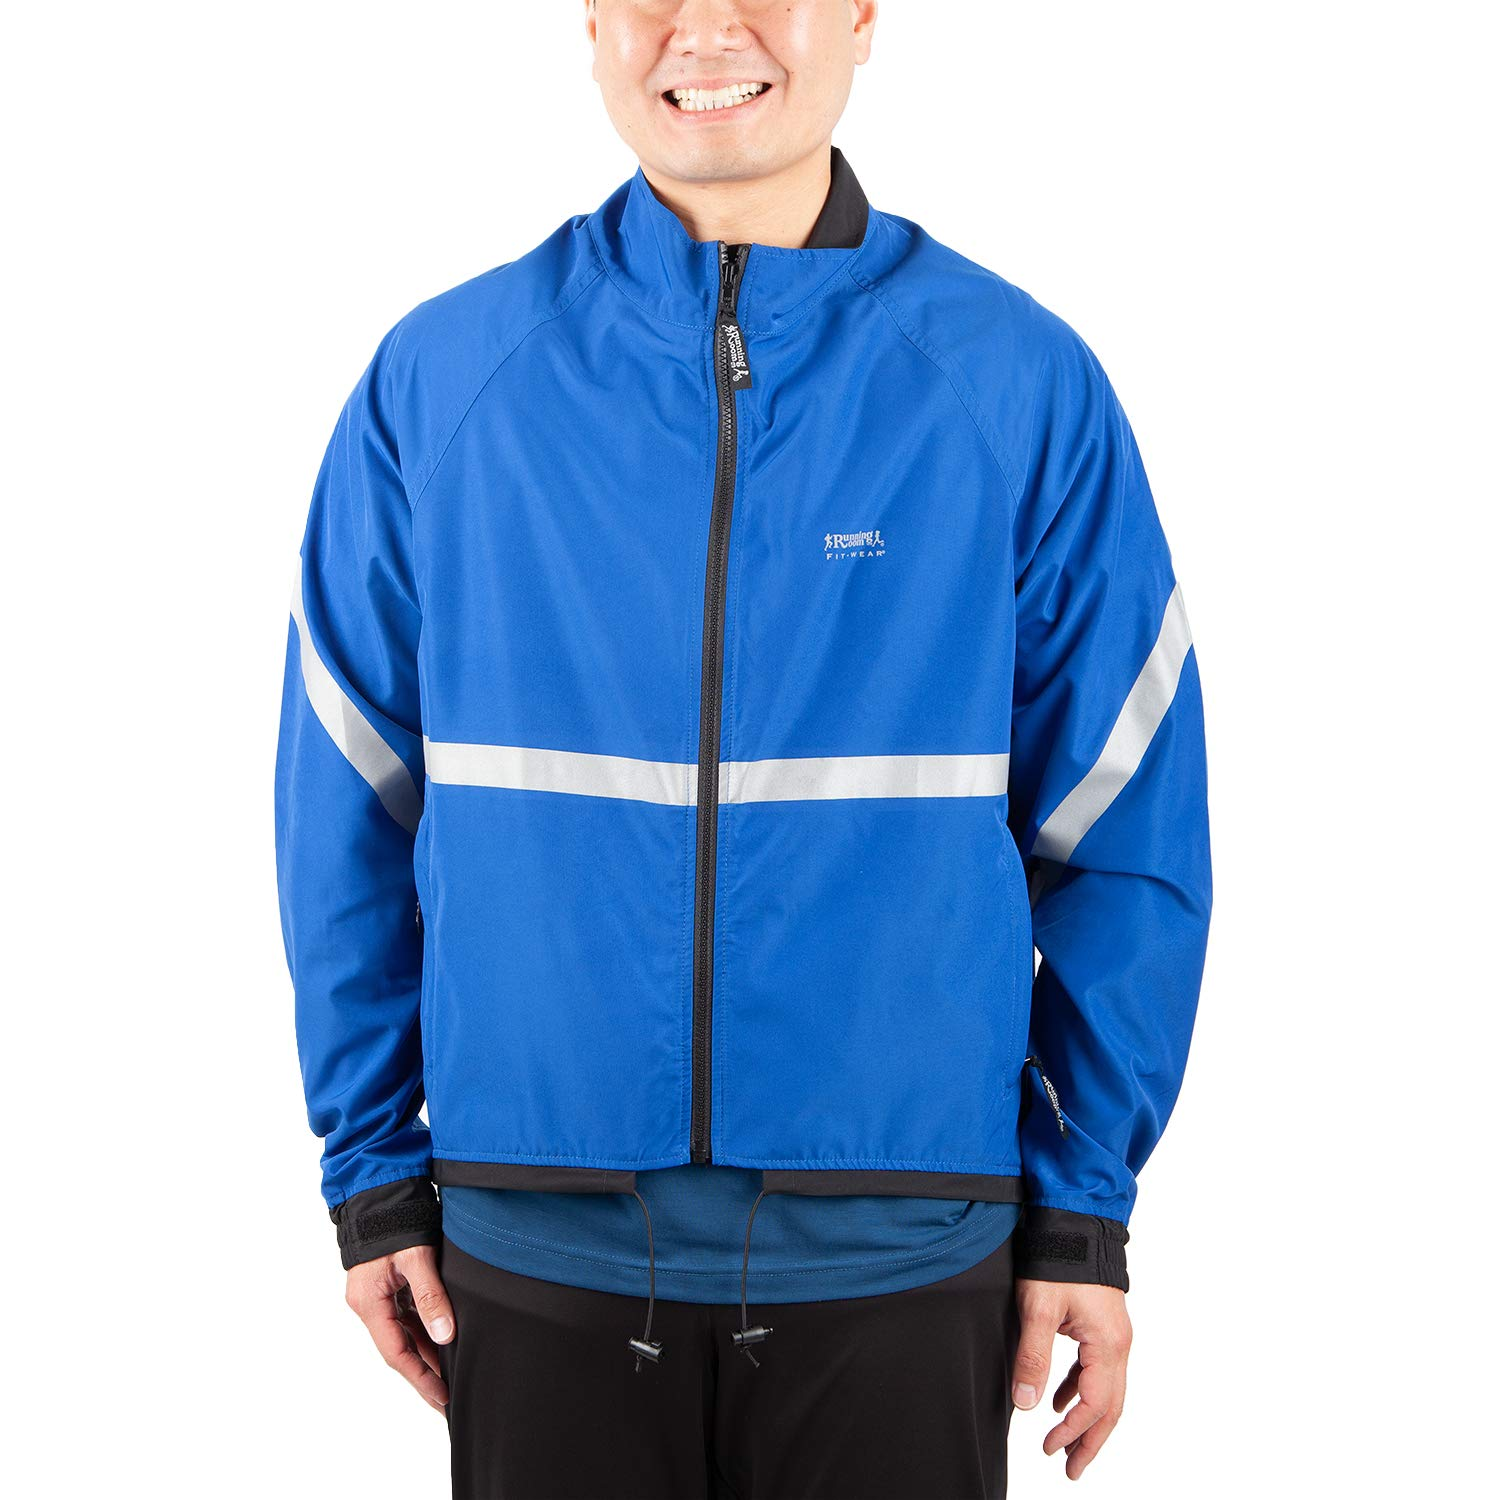 Running Room Unisex Reflective Jacket with Pockets (LRG, Royal bluee)